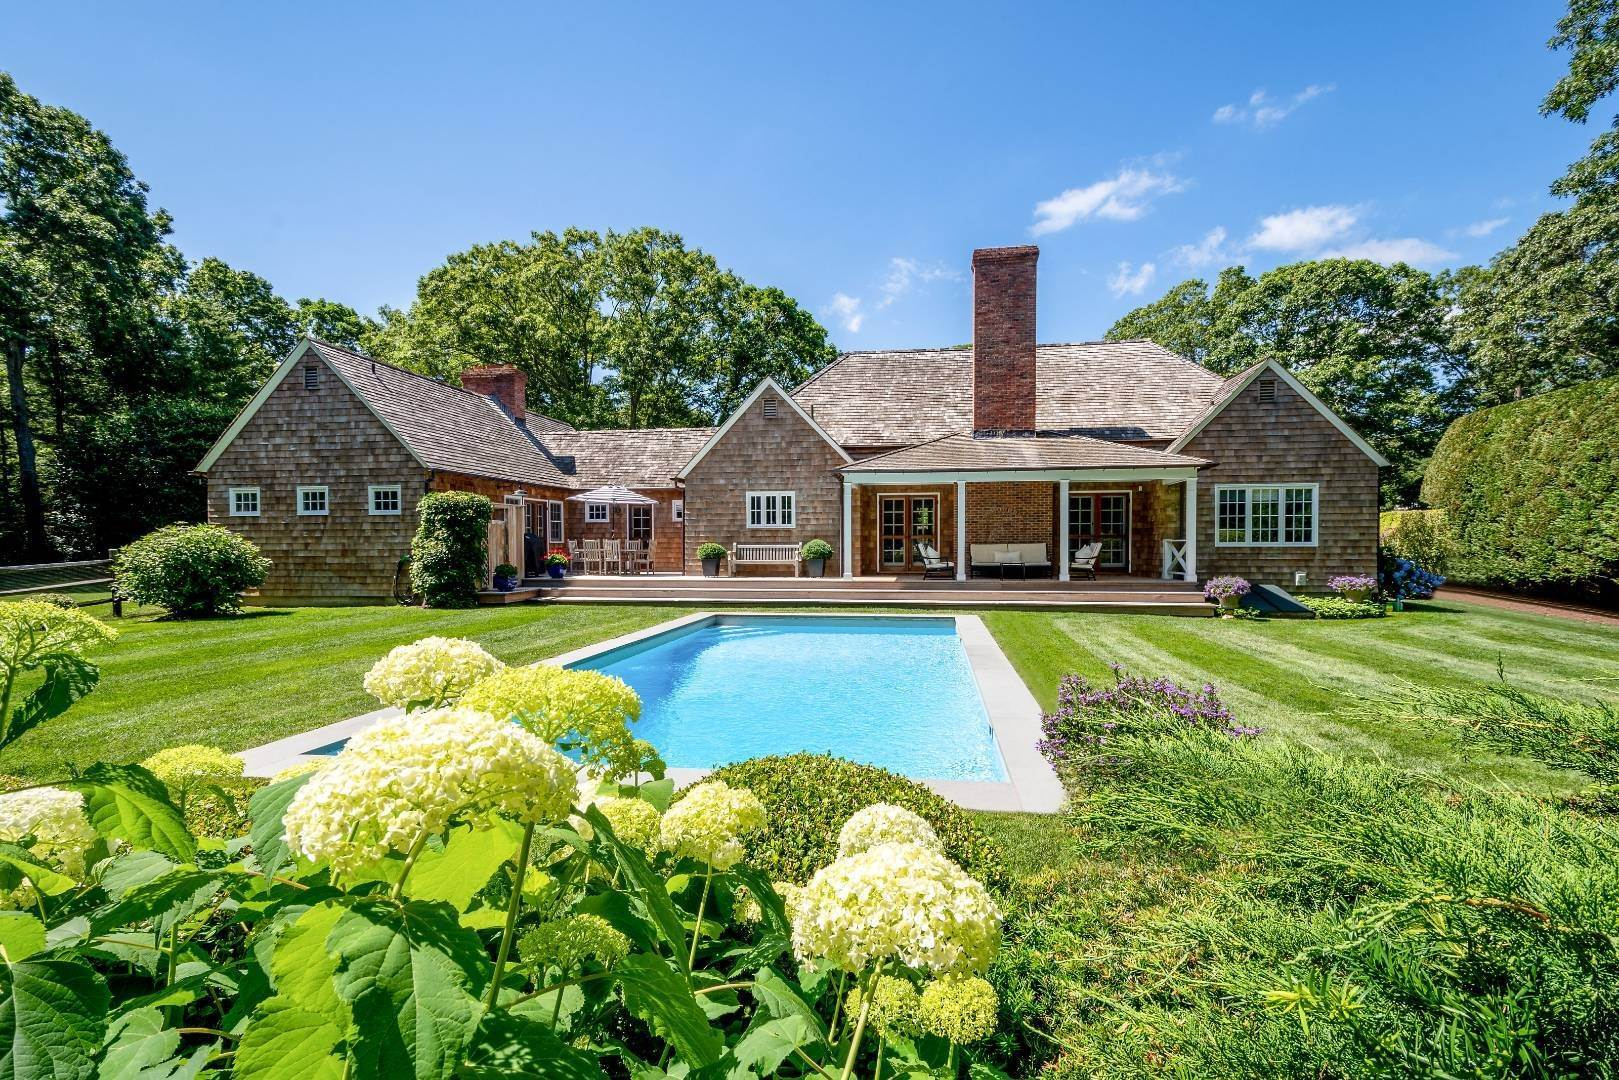 Single Family Home at Stunning In Wainscott South Wainscott, NY 11975